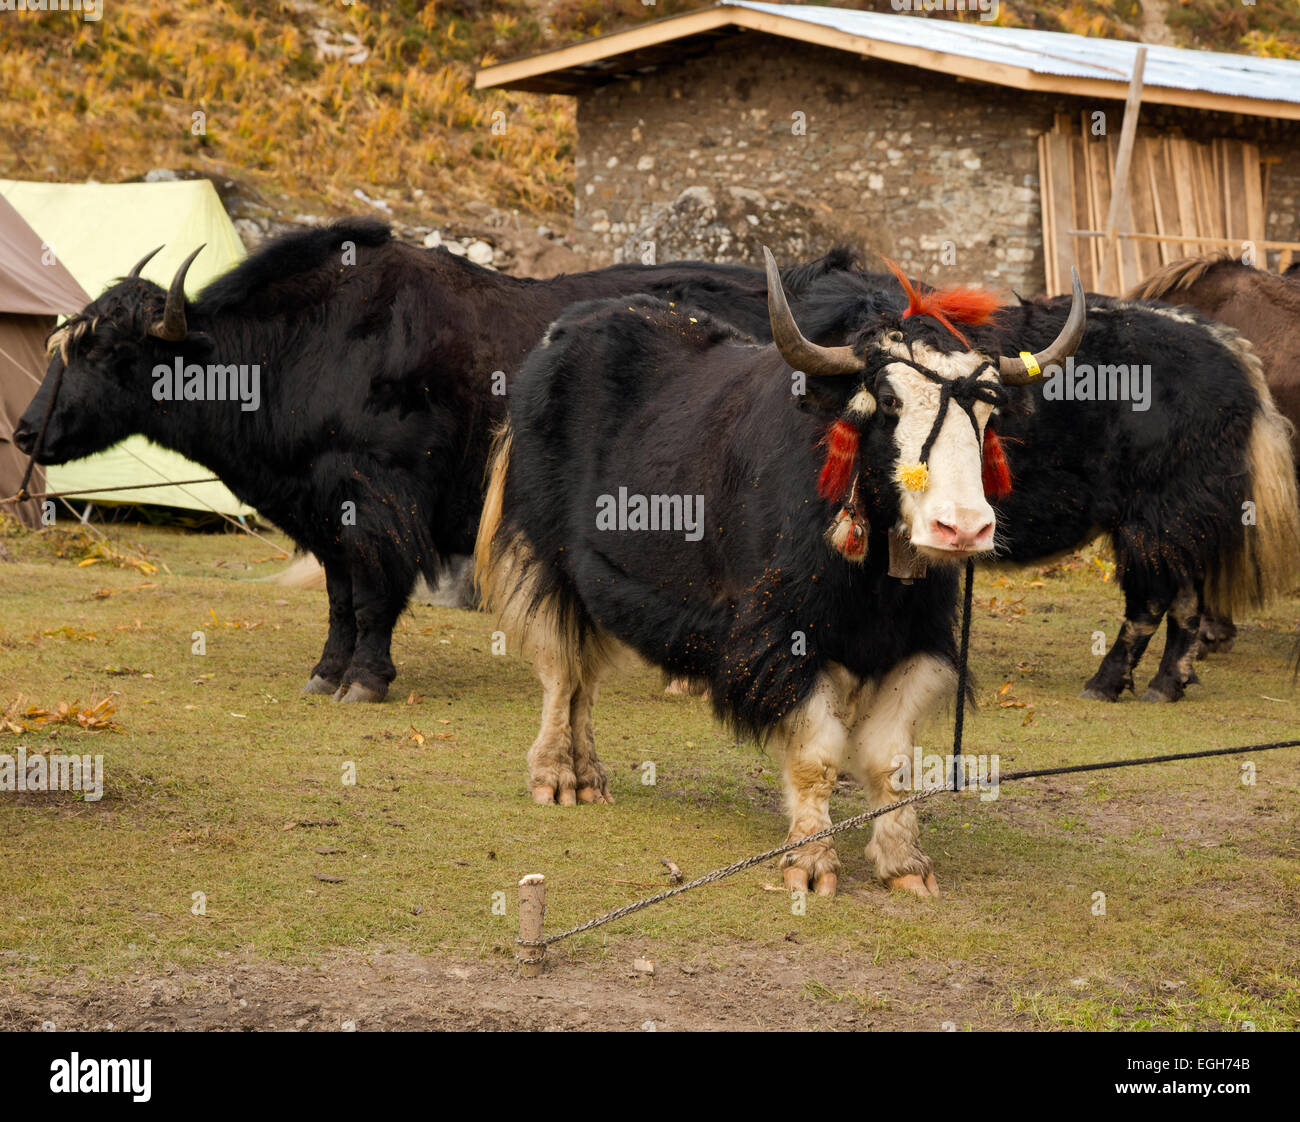 BHUTAN - Yaks waiting at Jangothang Campsite to carry loads for trekkers over passes that are too high for the ponies - Stock Image